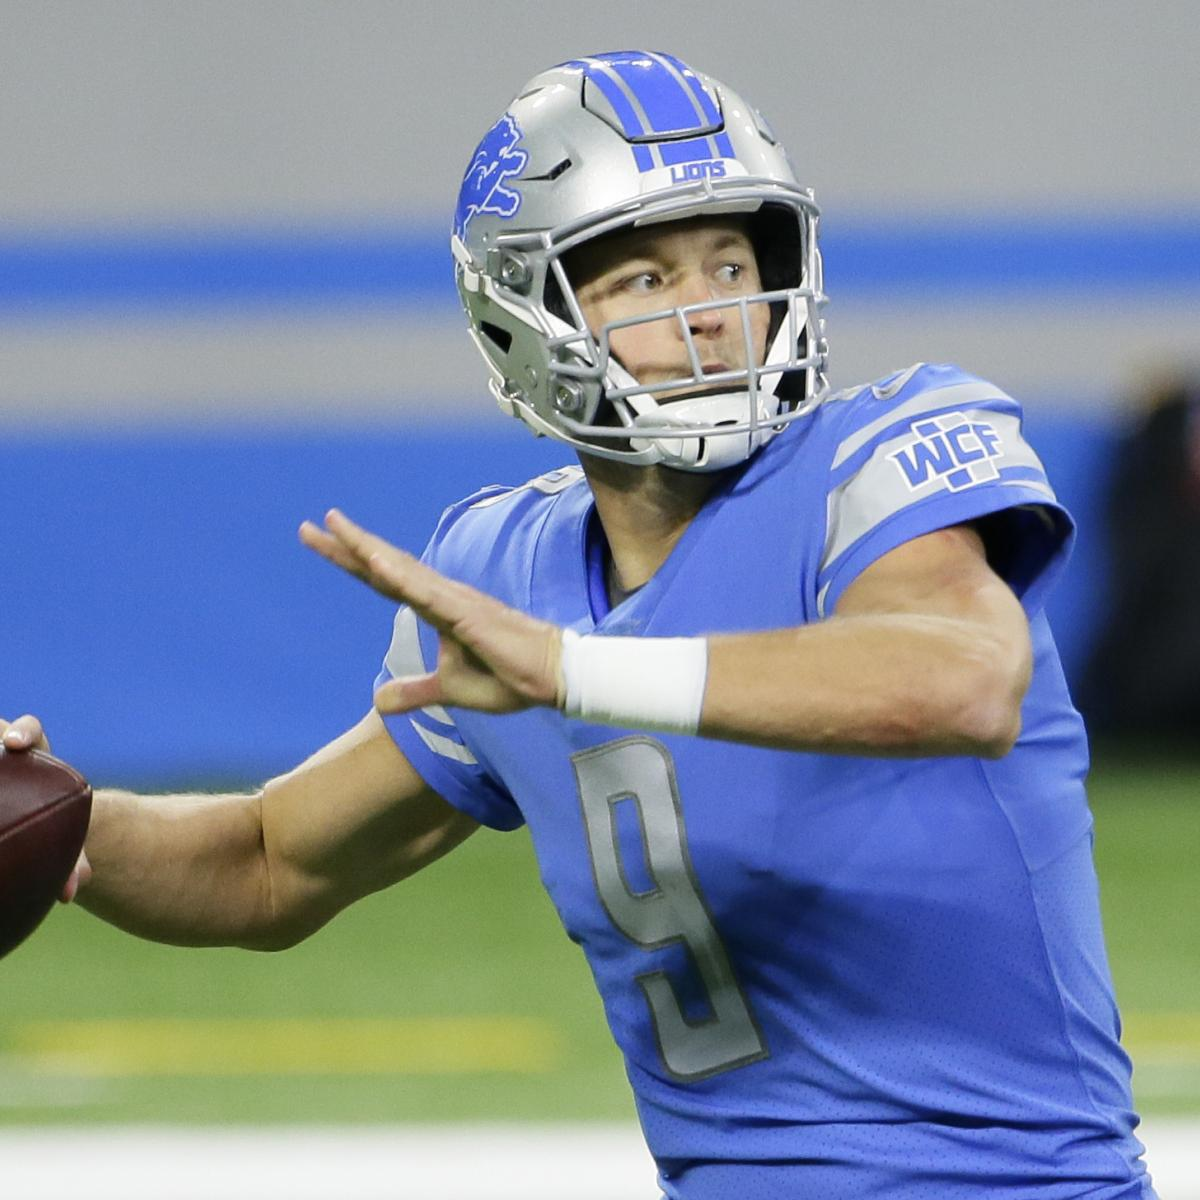 Week 7 Start 'Em, Sit 'Em: Play or Bench Advice on Top Fantasy Football Stars